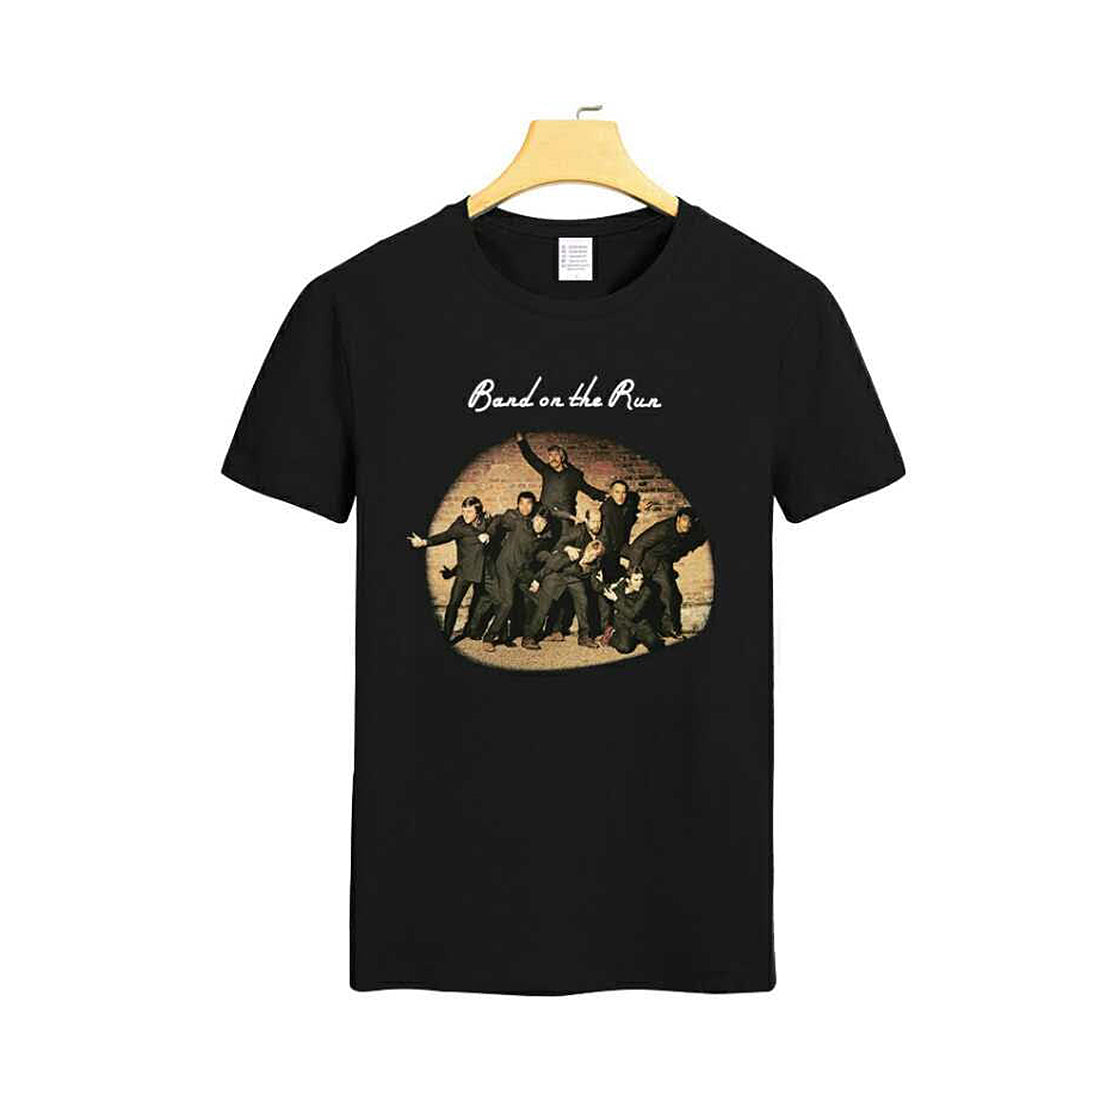 Paul McCartney - Band on the Run T-Shirt